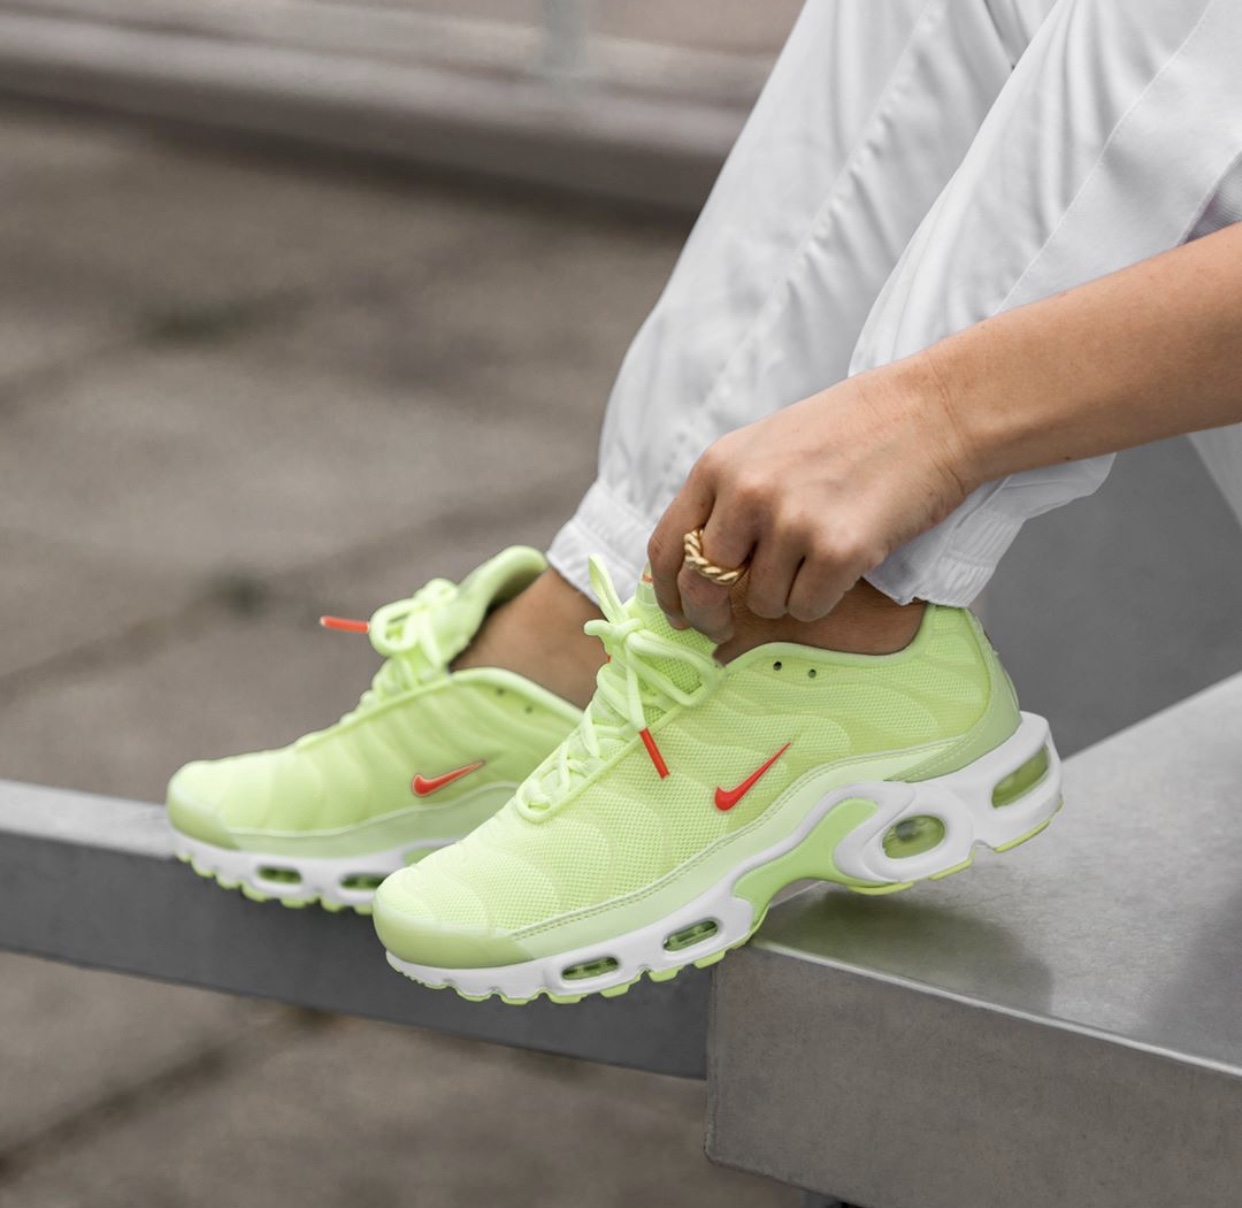 competitive price designer fashion 100% top quality Barely Volt' Hits The Nike Air Max Plus TN SE — CNK Daily ...